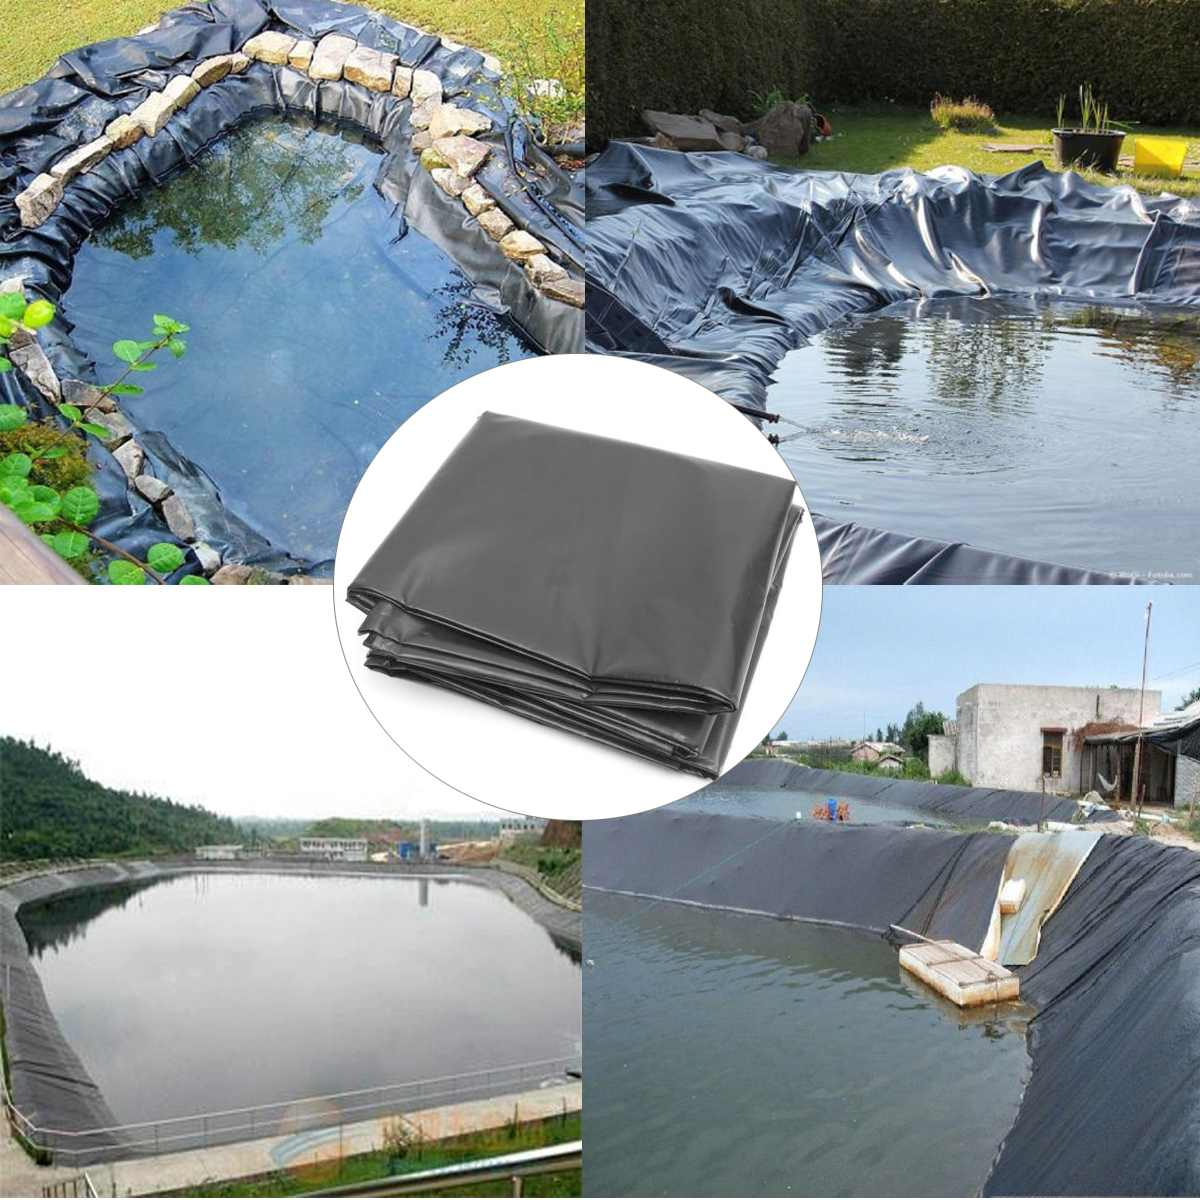 HDPE Fish Pond Liner Rubber Waterproof Membrane 6x8m / 6x7m / 6x6m / 6x5m / 6x4m Garden Pond Landscaping Pool Thick Liner ClothHDPE Fish Pond Liner Rubber Waterproof Membrane 6x8m / 6x7m / 6x6m / 6x5m / 6x4m Garden Pond Landscaping Pool Thick Liner Cloth